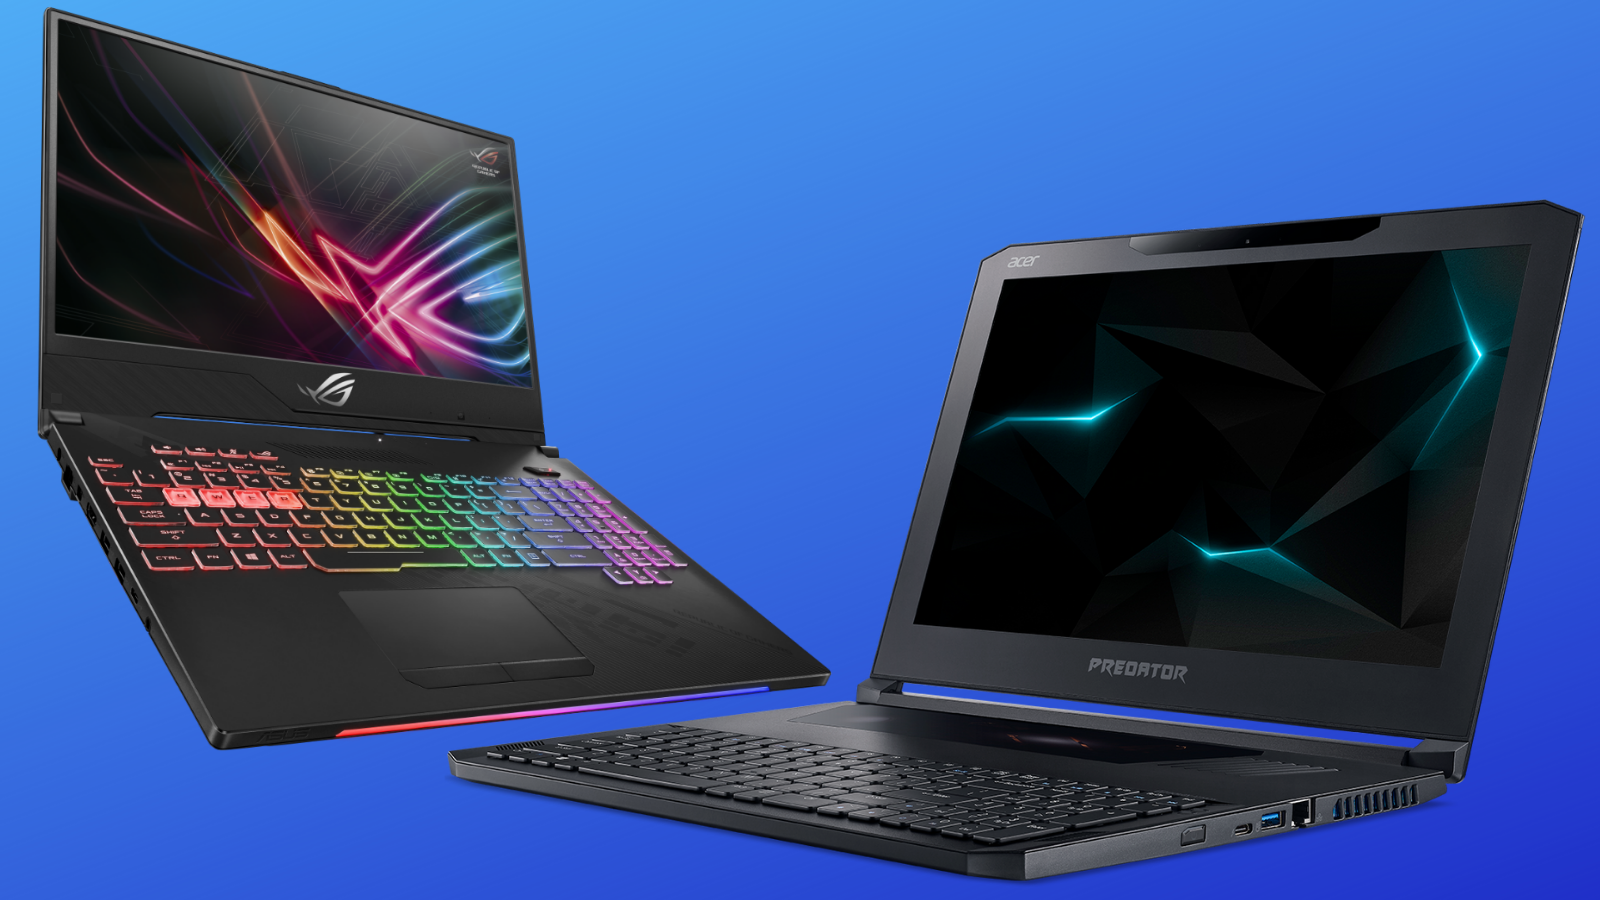 9 Best NVIDIA G-Sync Gaming Laptops in 2019 For Smooth Gaming